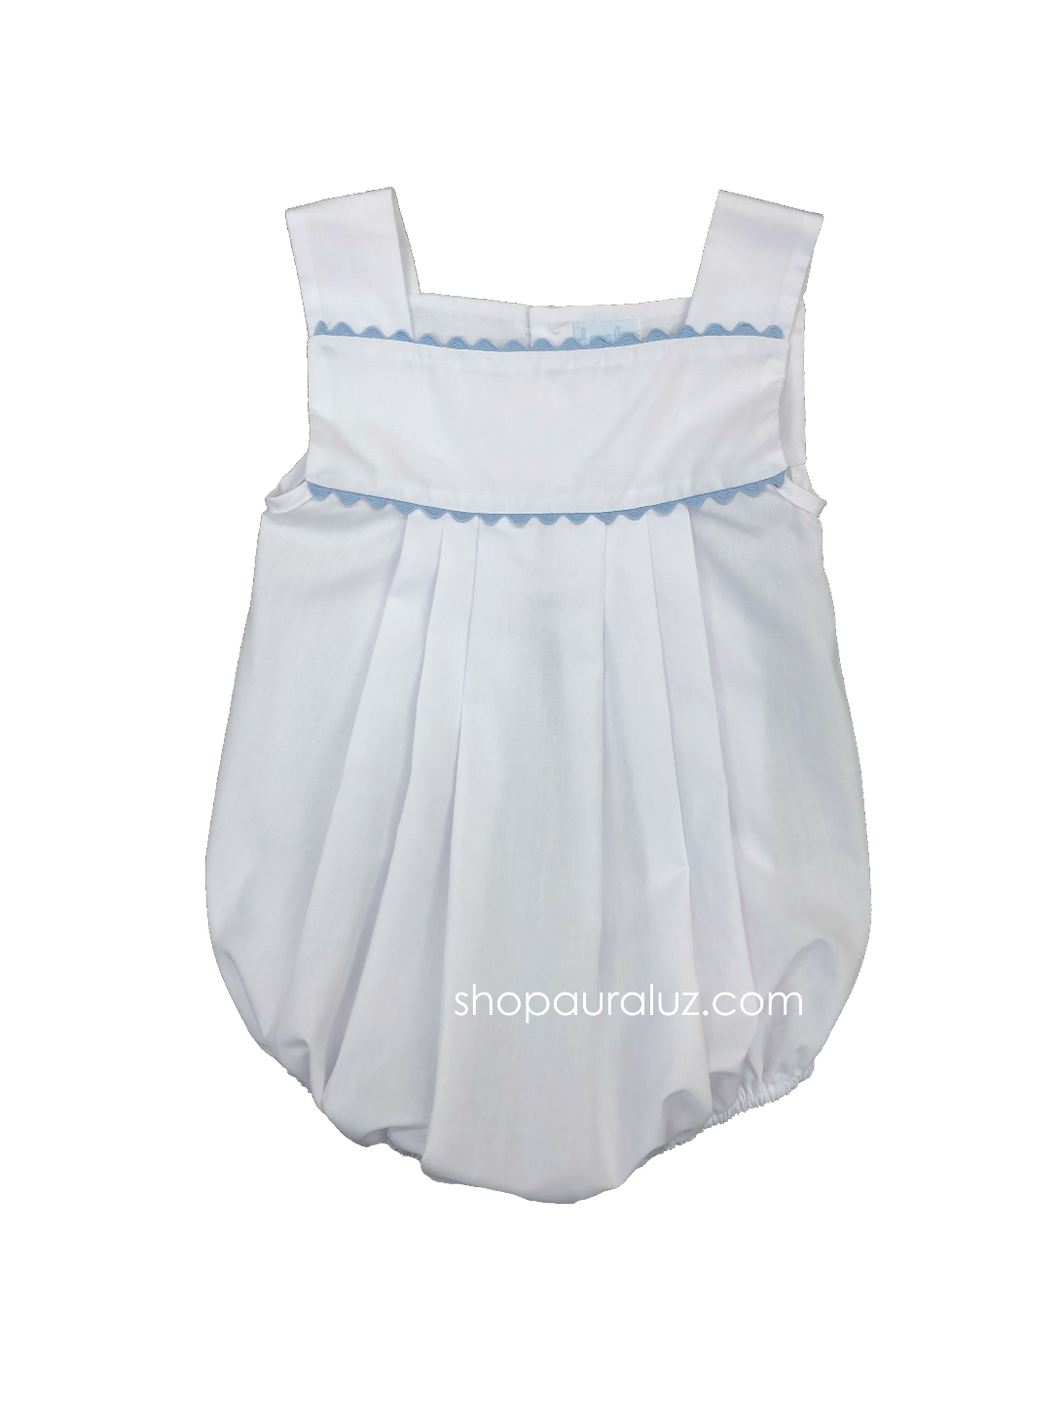 Auraluz Boy Sun Bubble...White with blue ric-rac trim